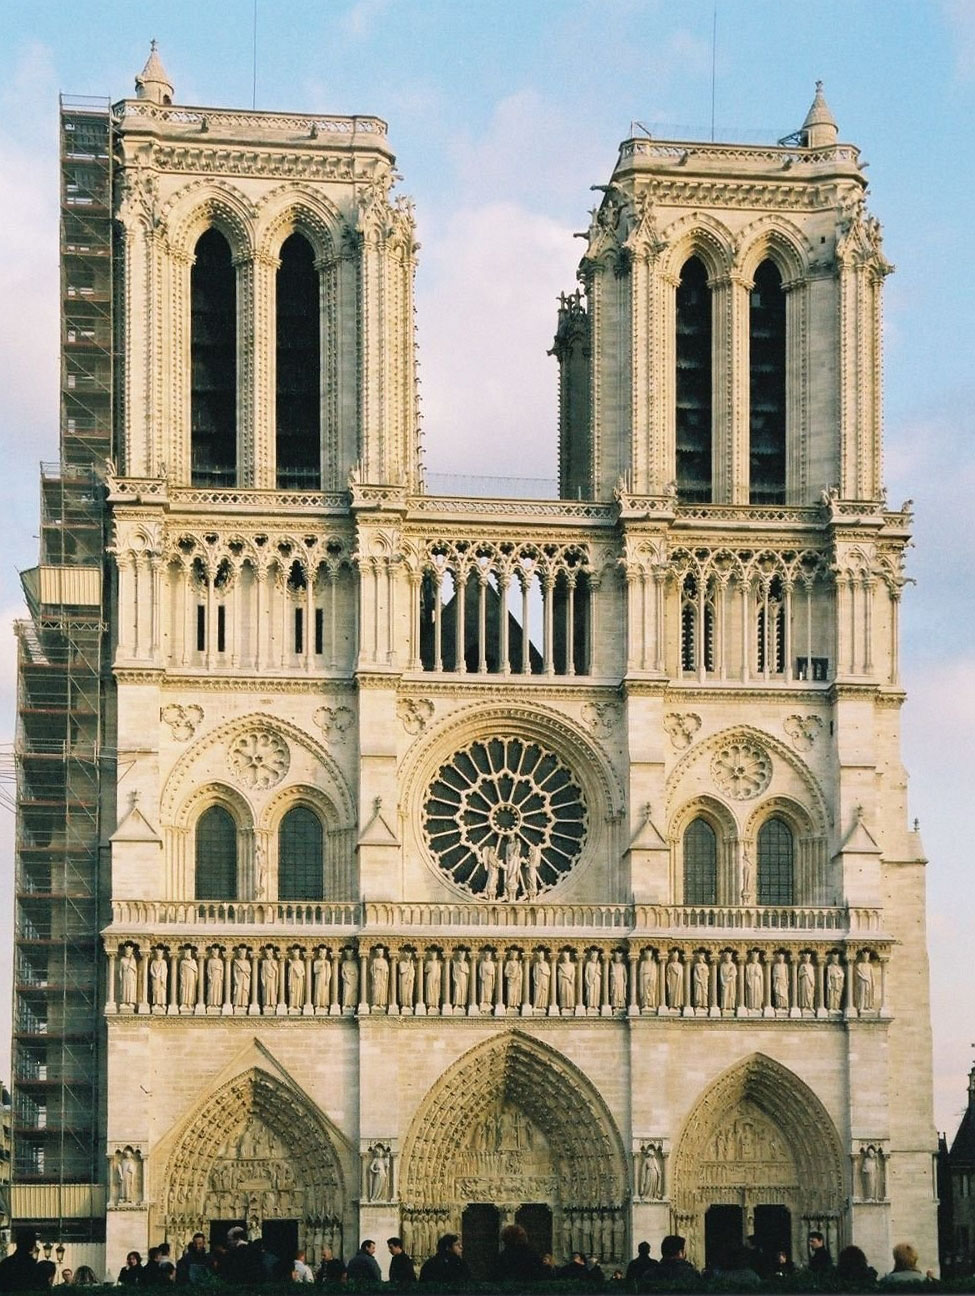 notre dame de paris Notre dame de paris cathedral is also a catholic place of worship attend mass in notre-dame cathedral during your vacation in paris.